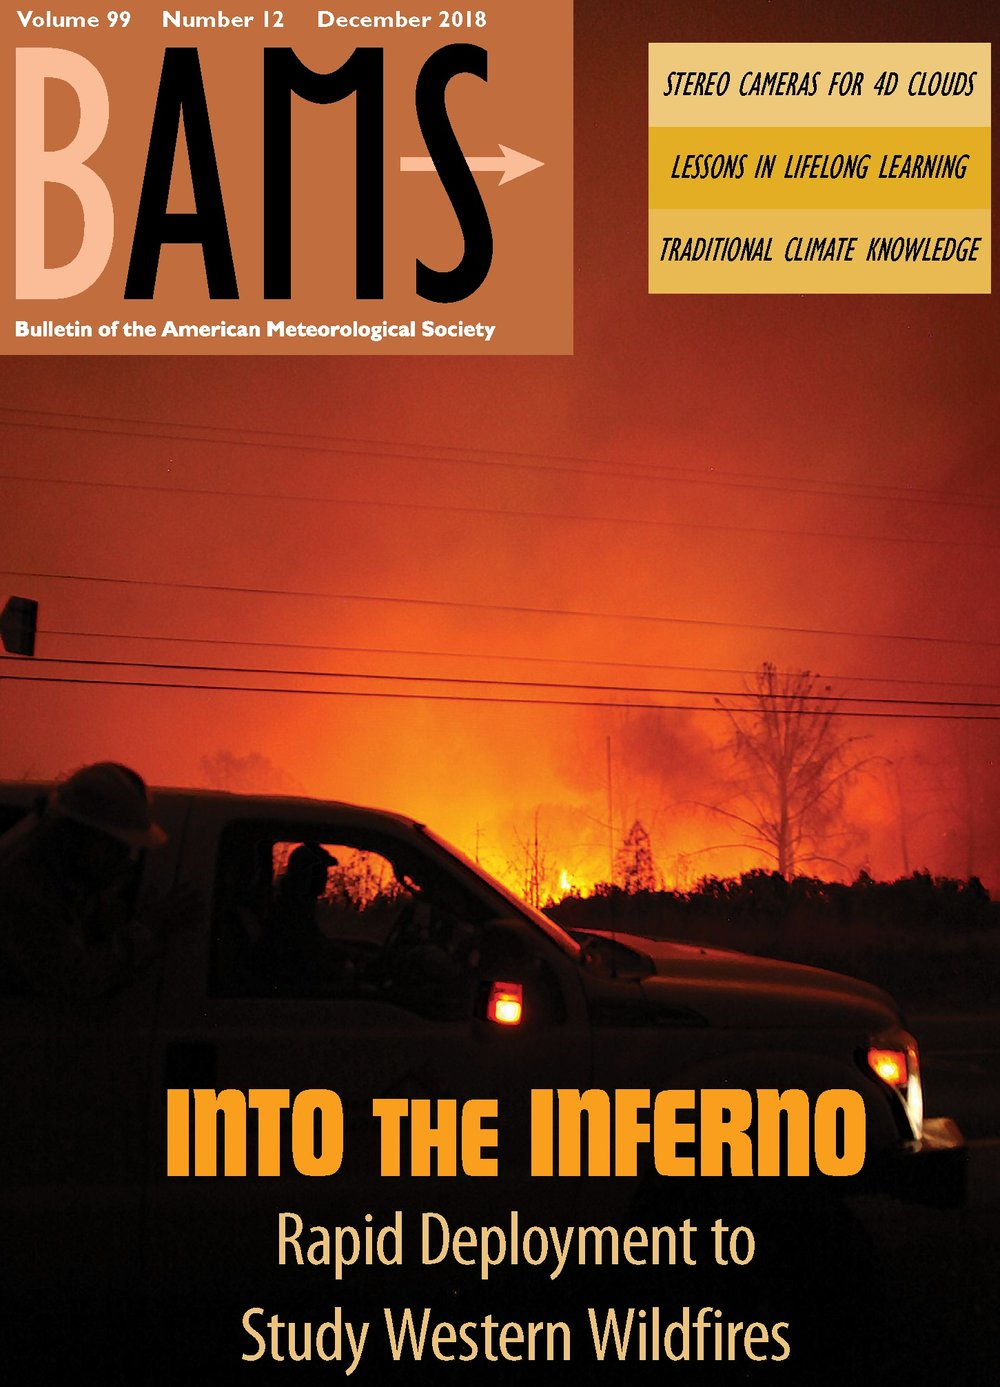 Cover photo of the Camp fire on the Bulletin of the American Meteorological Society